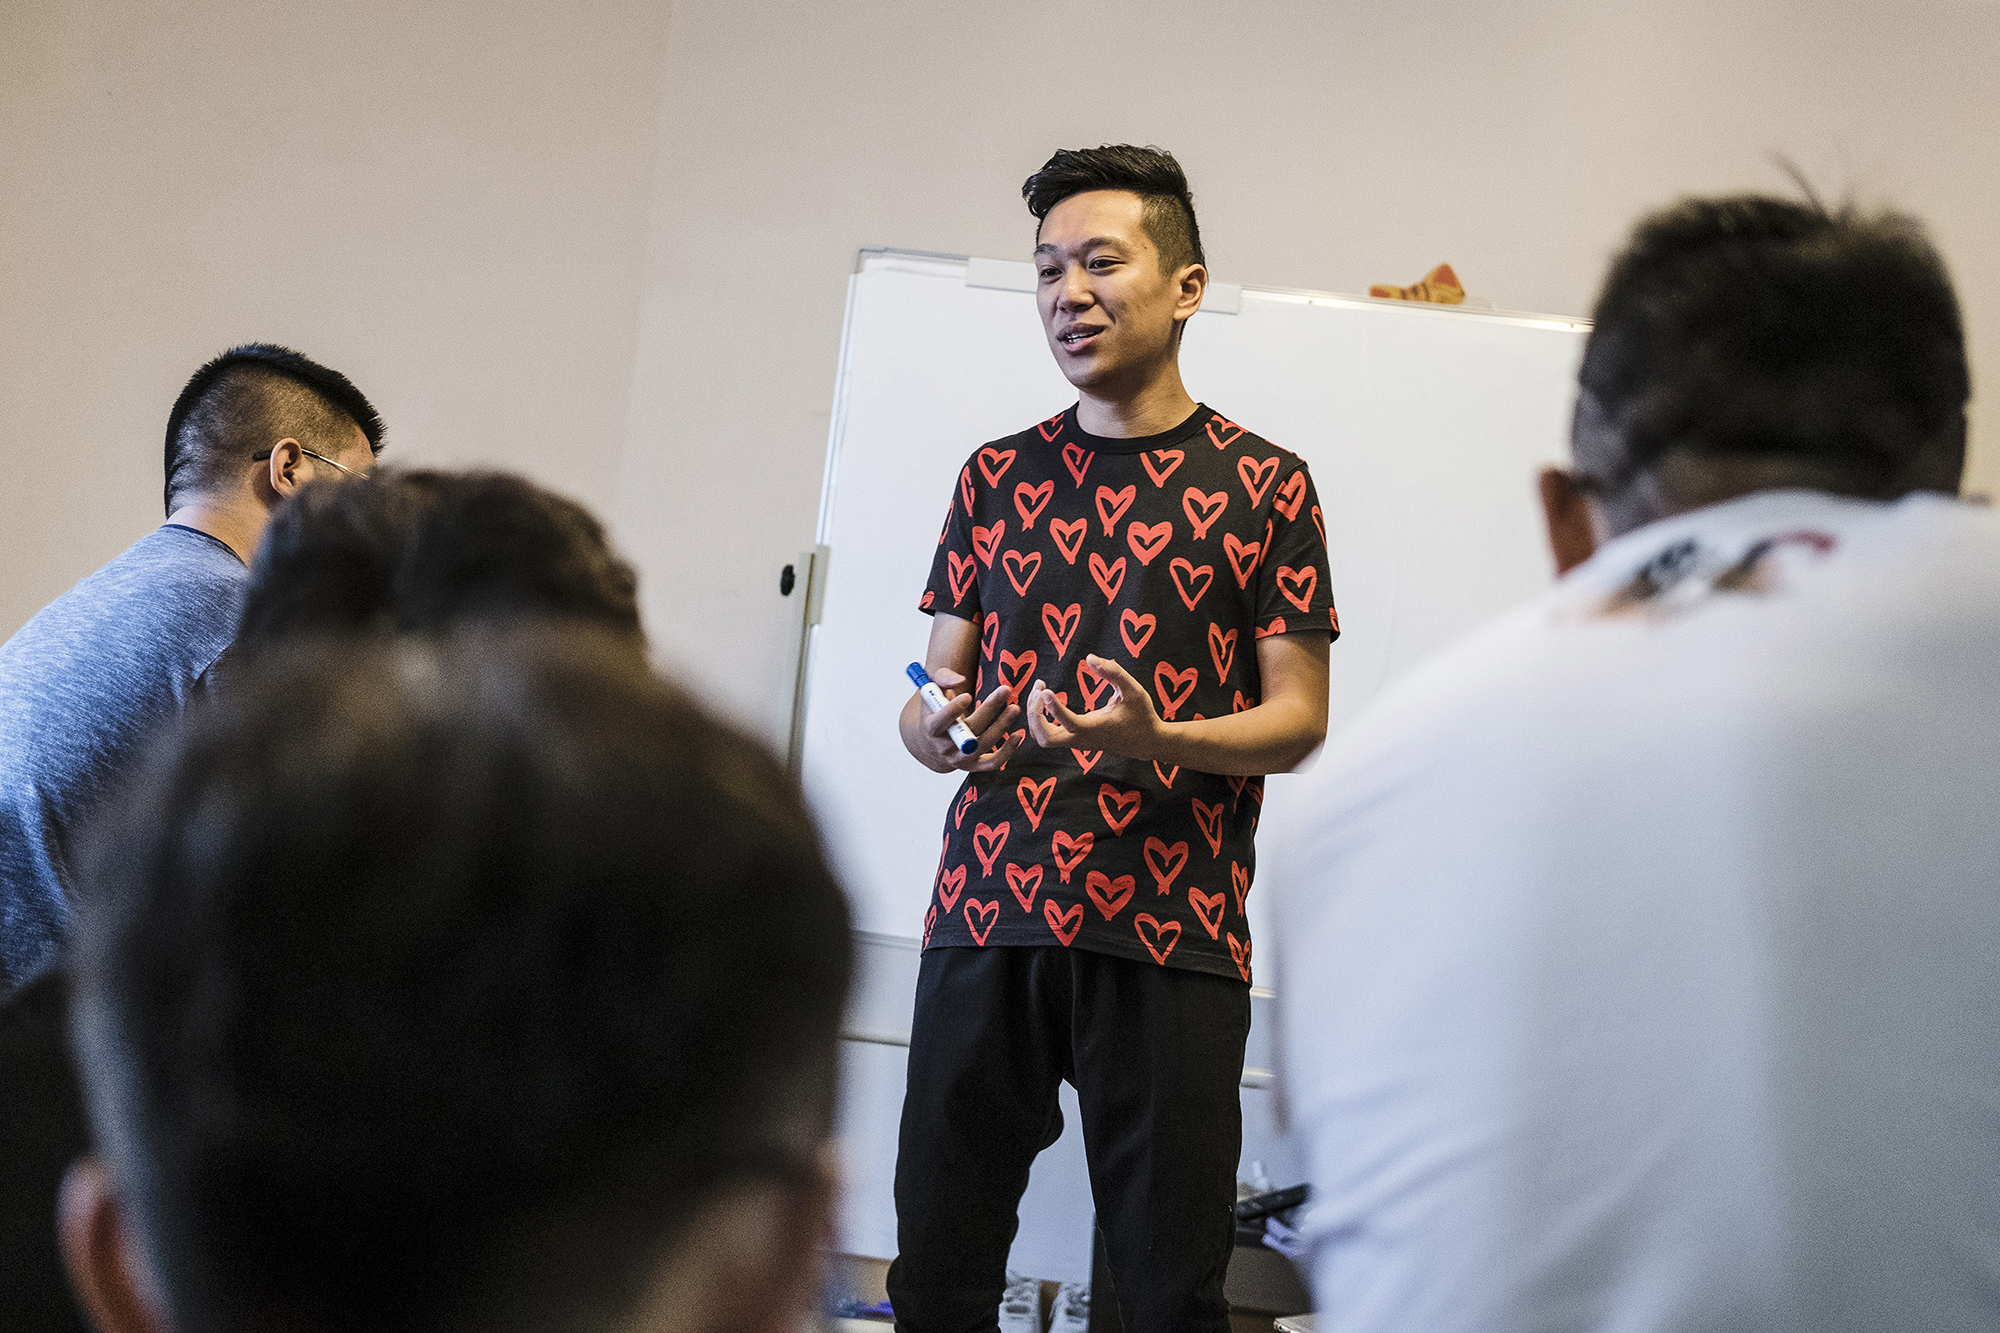 A Puamap mentor, Brian, teaches students how to chat with women, October 3, 2016. A week-long Puamap program costs 7,000 renminbi (U.S.$1,055).